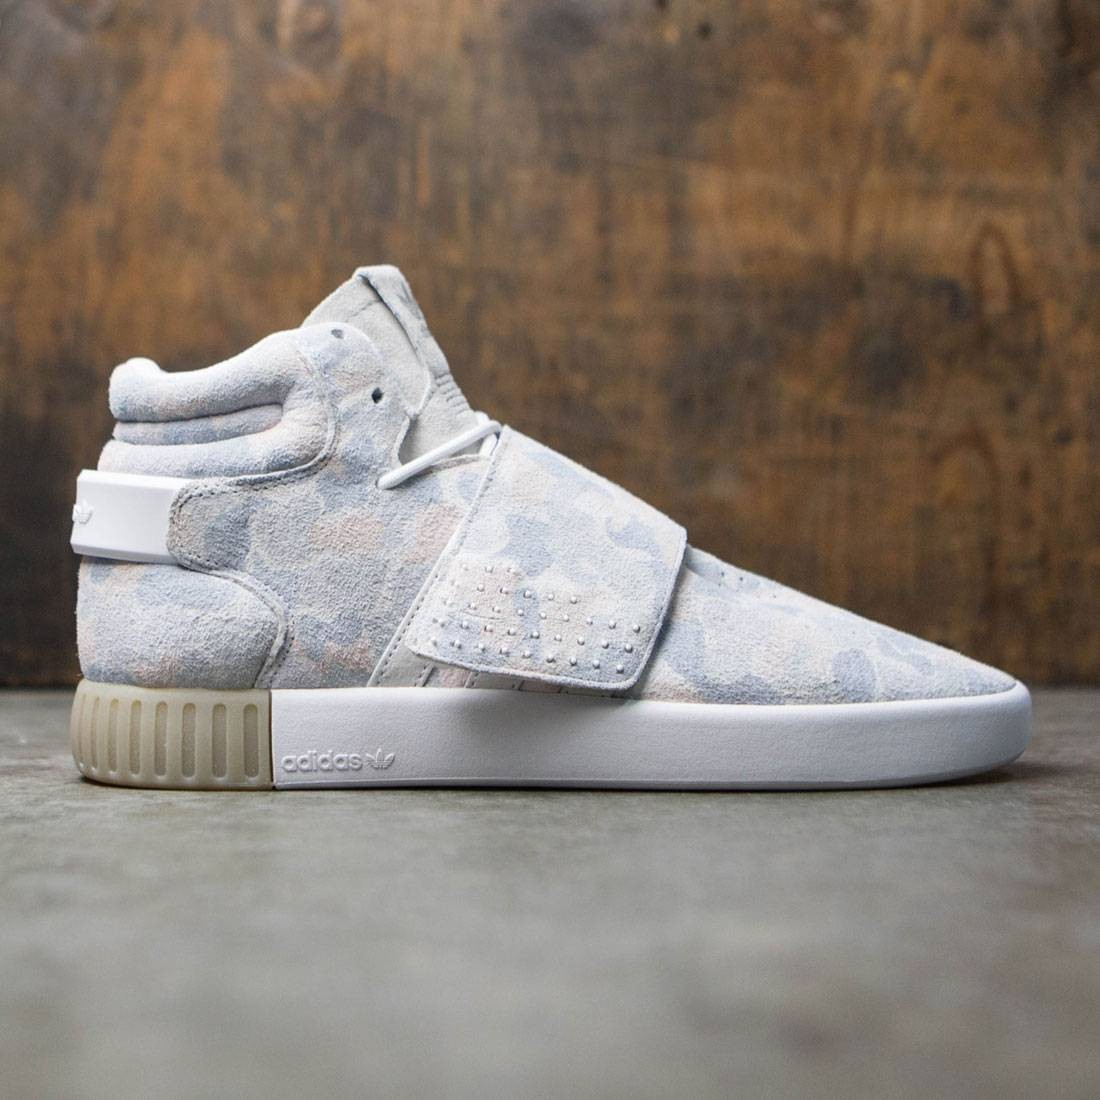 ... shop adidas men tubular invader strap white footwear white light solid  grey f3700 3ecb0 ... 5f81f4ace